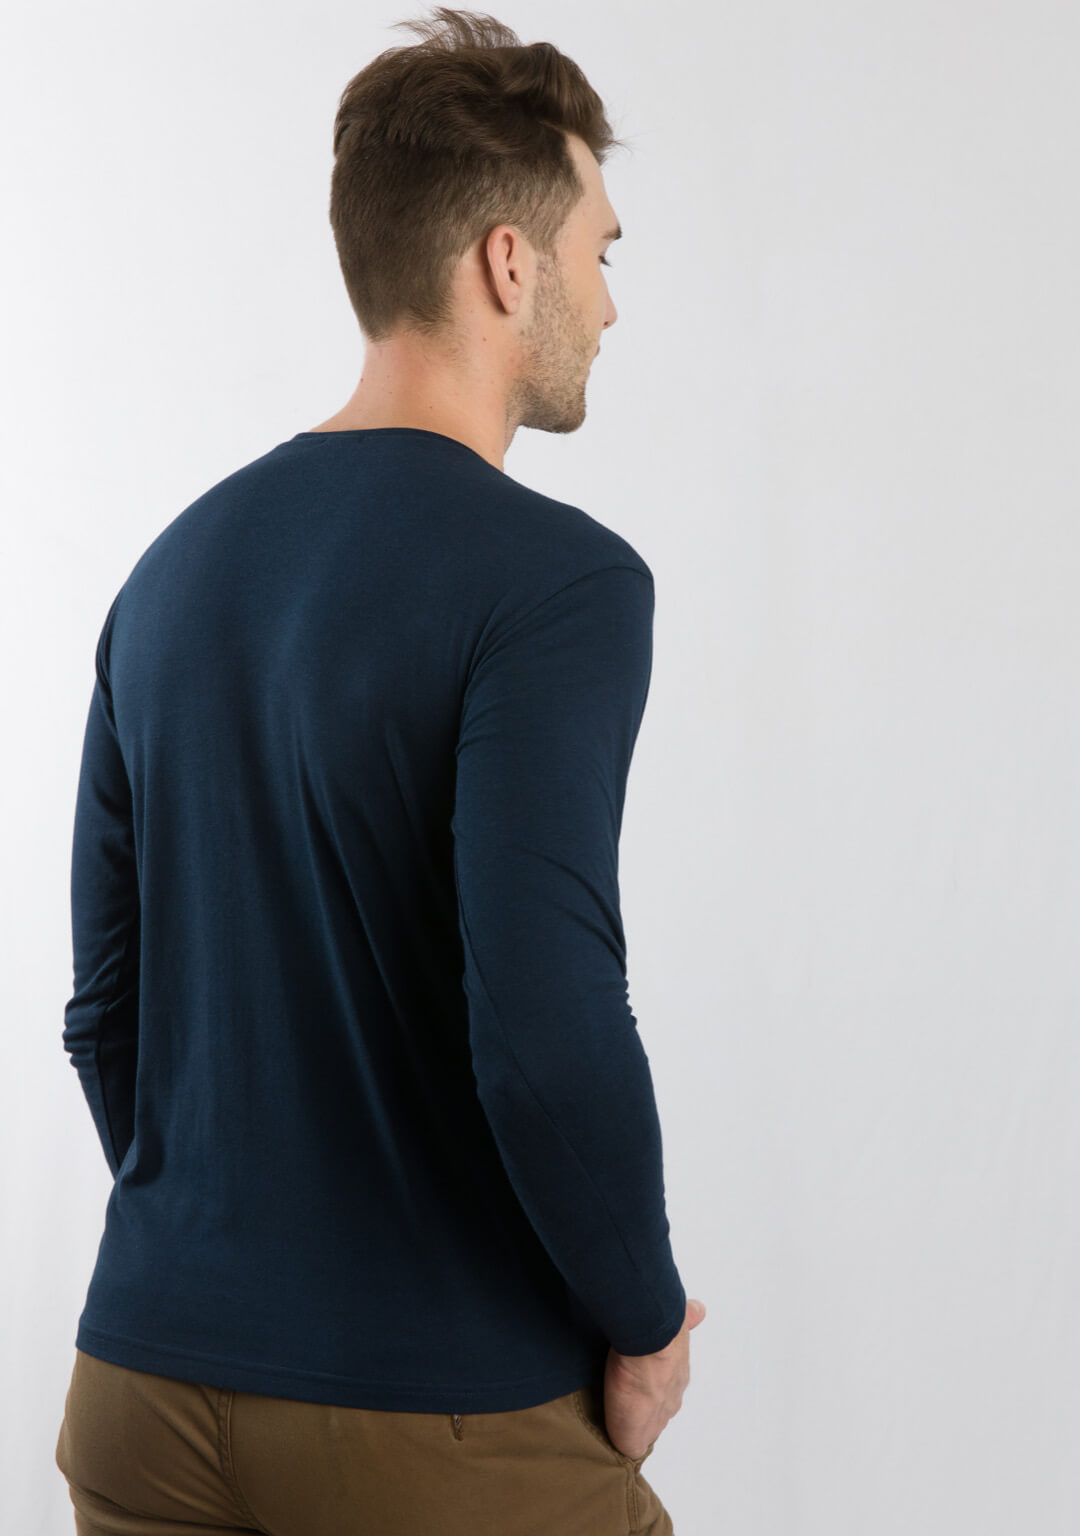 Full Sleeve T-shirt in Ensign Blue